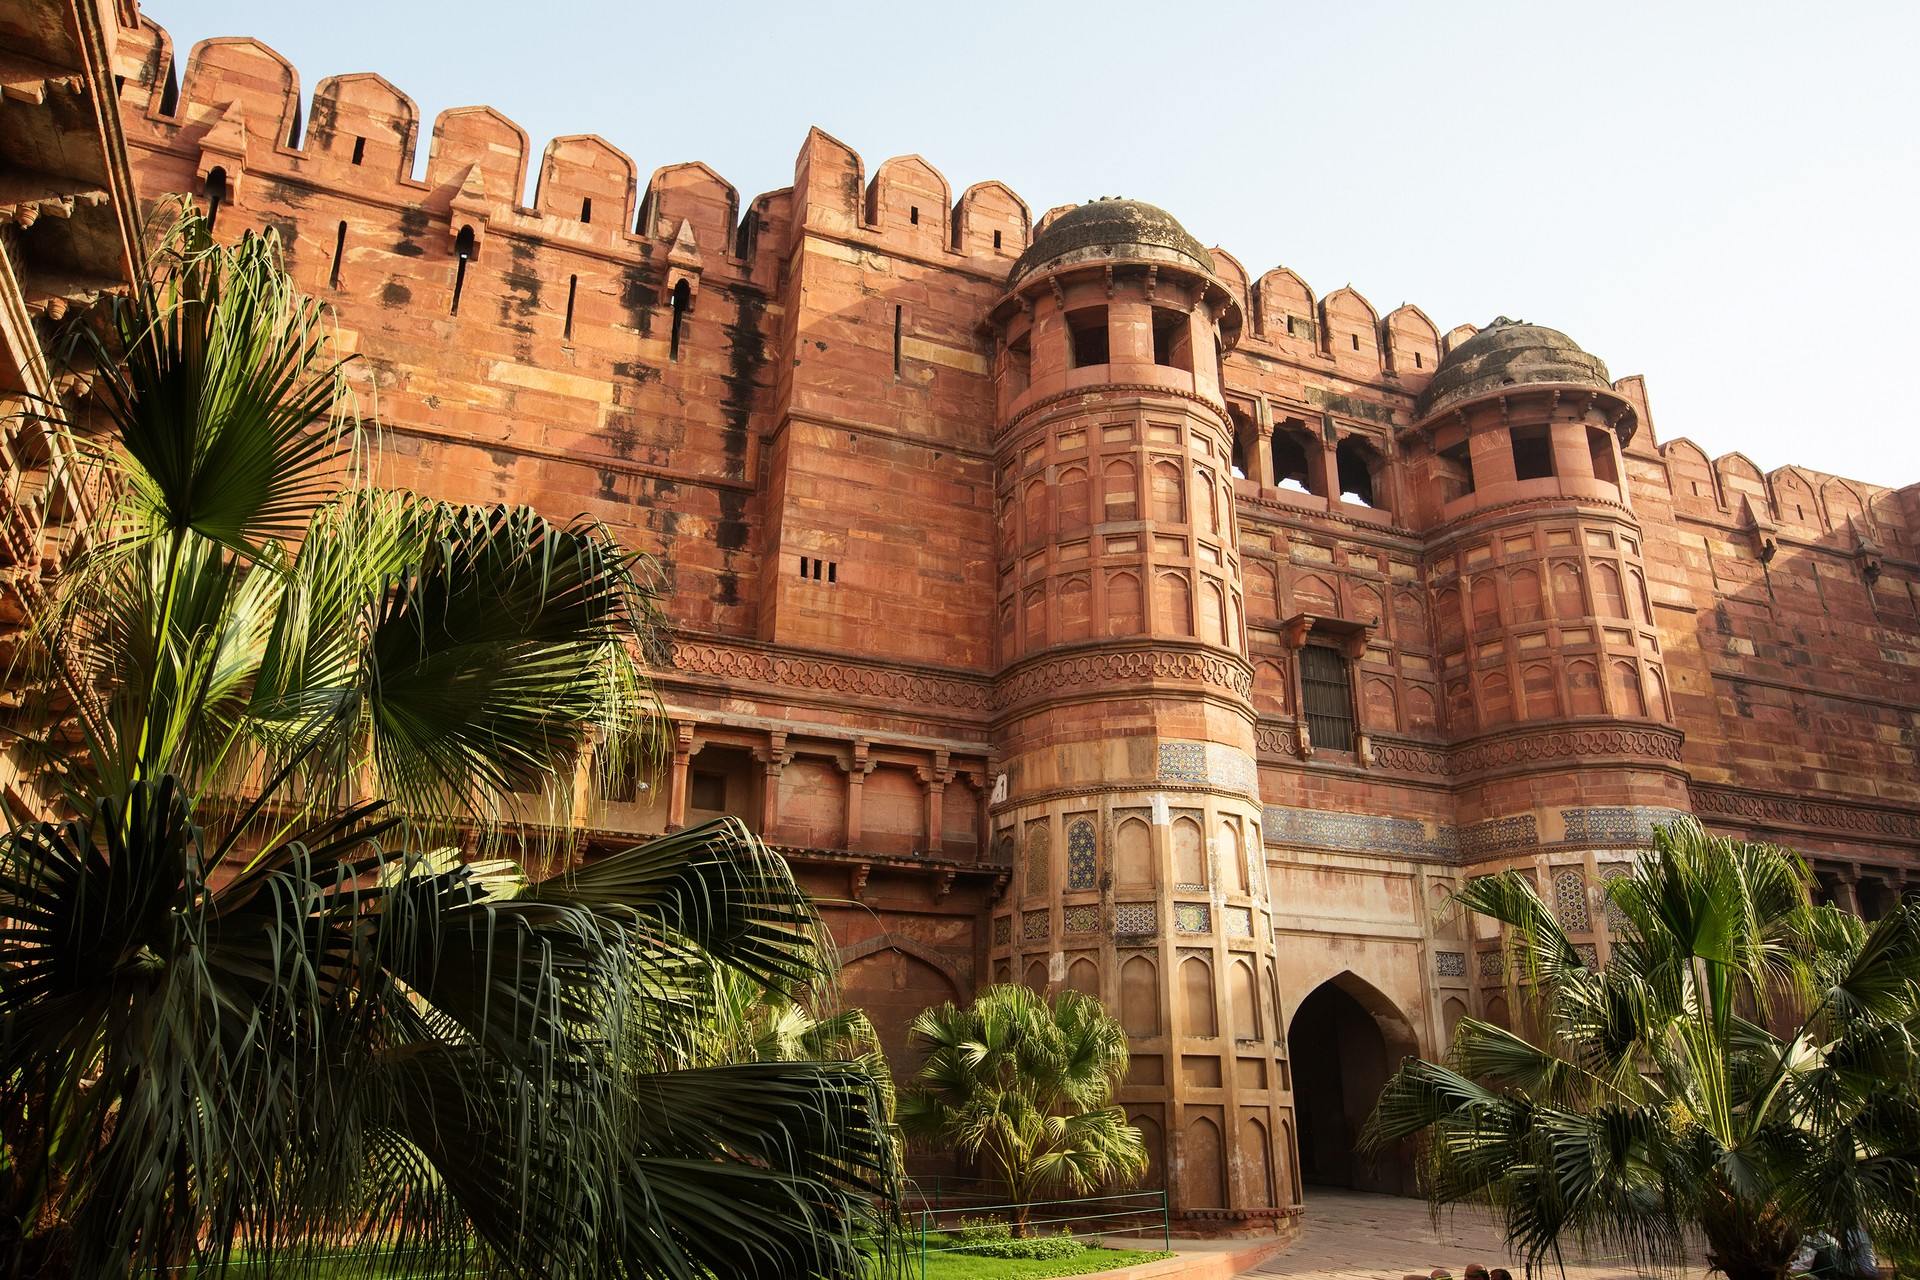 Gate of the Red Fort in Agra